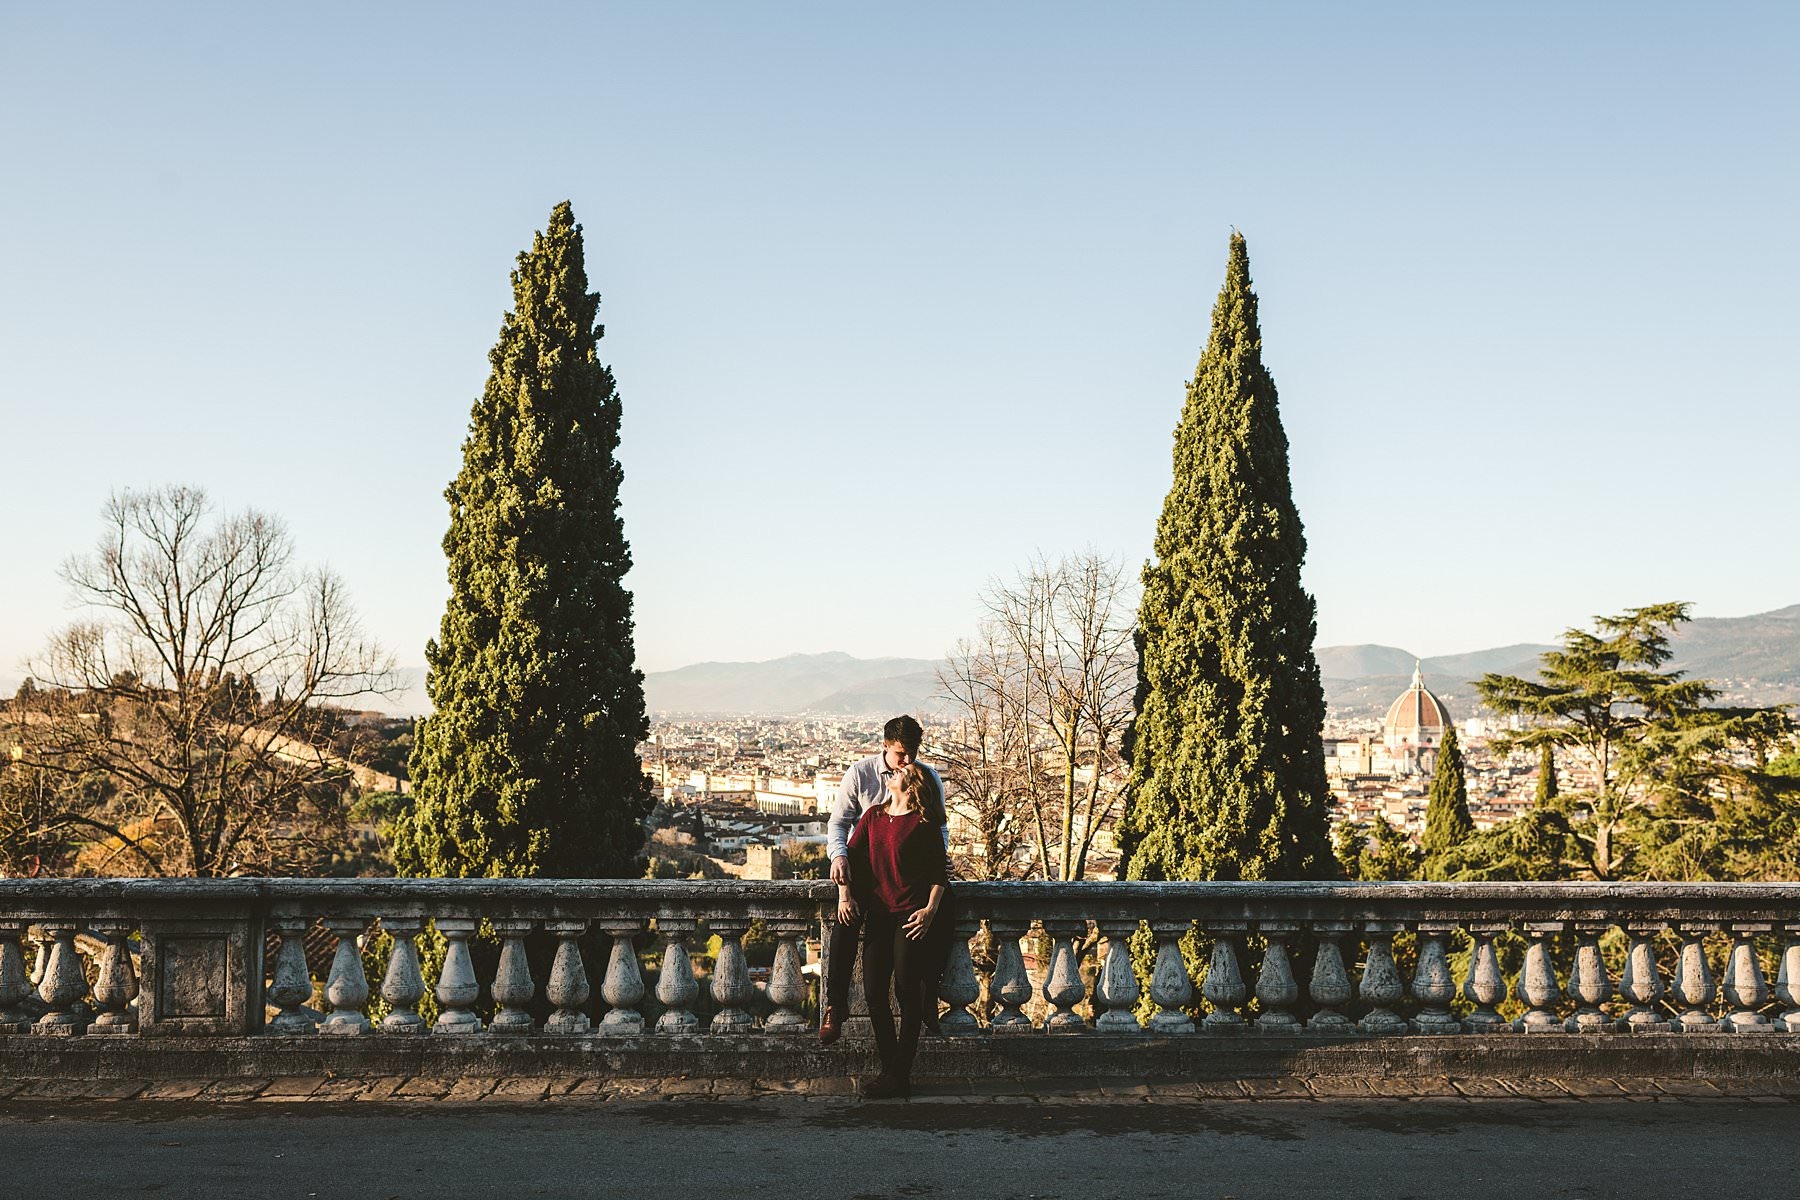 The charm of Florence in winter. Even though it was winter, due to the Christmas holidays Florence was crowded with tourists, and the day we picked for these romantic engagement photos – December 23rd – was no exception. This is one of the reasons why our session started in San Miniato al Monte: besides offering a breathtaking view of the city and many different backgrounds to play with, it's usually less busy than other spots. It's no surprise that it turned out to be perfect to break the ice with Claudia and Andrew, who then could feel free to express their love to one another with hugs, kisses and heartfelt smiles